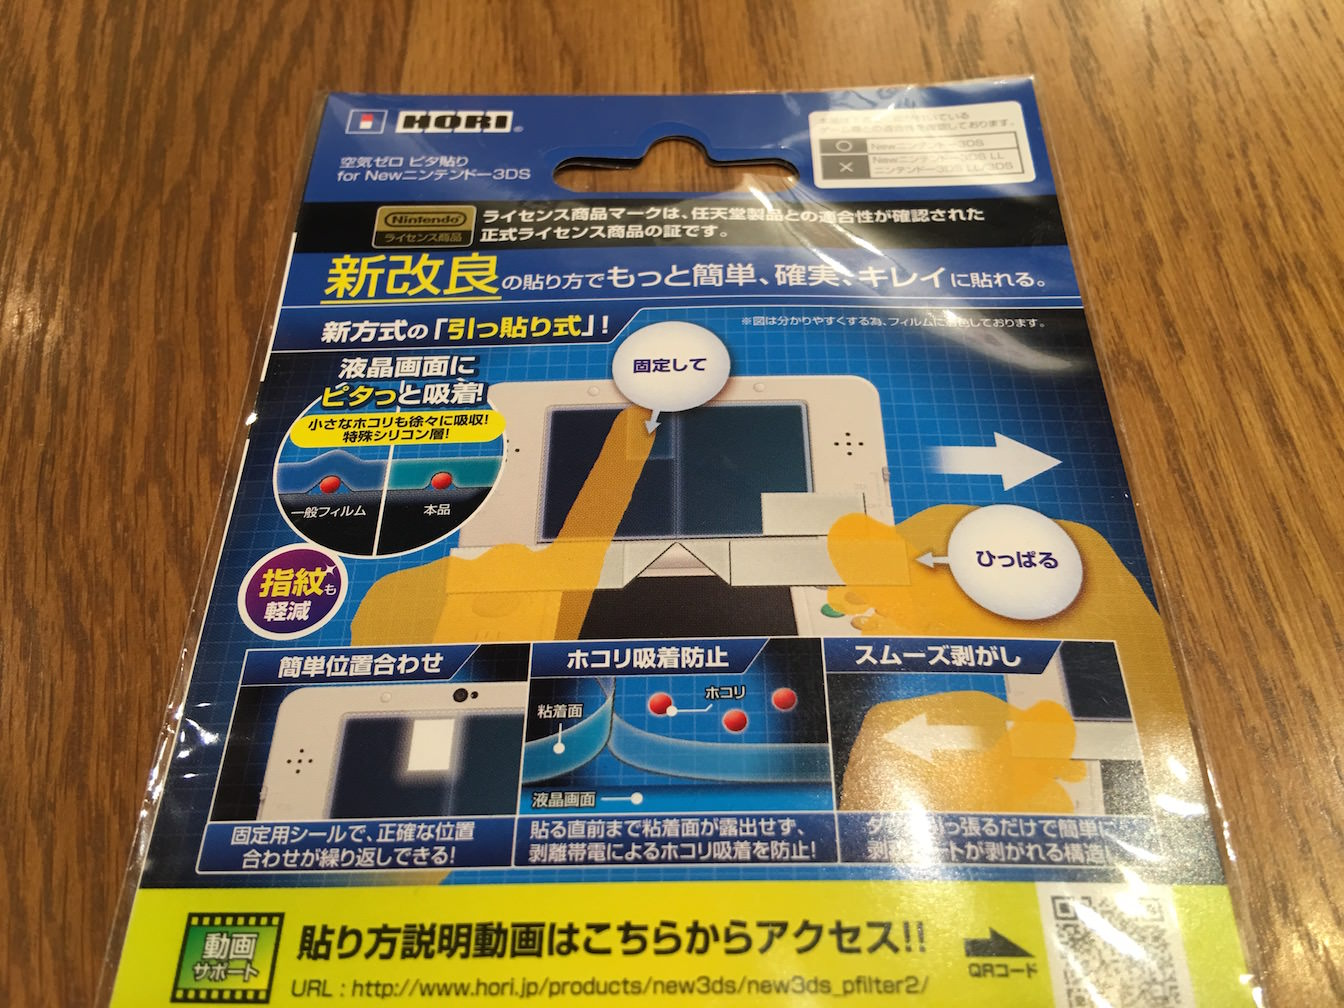 Review of zero pita filter for new nintendo 3ds 2